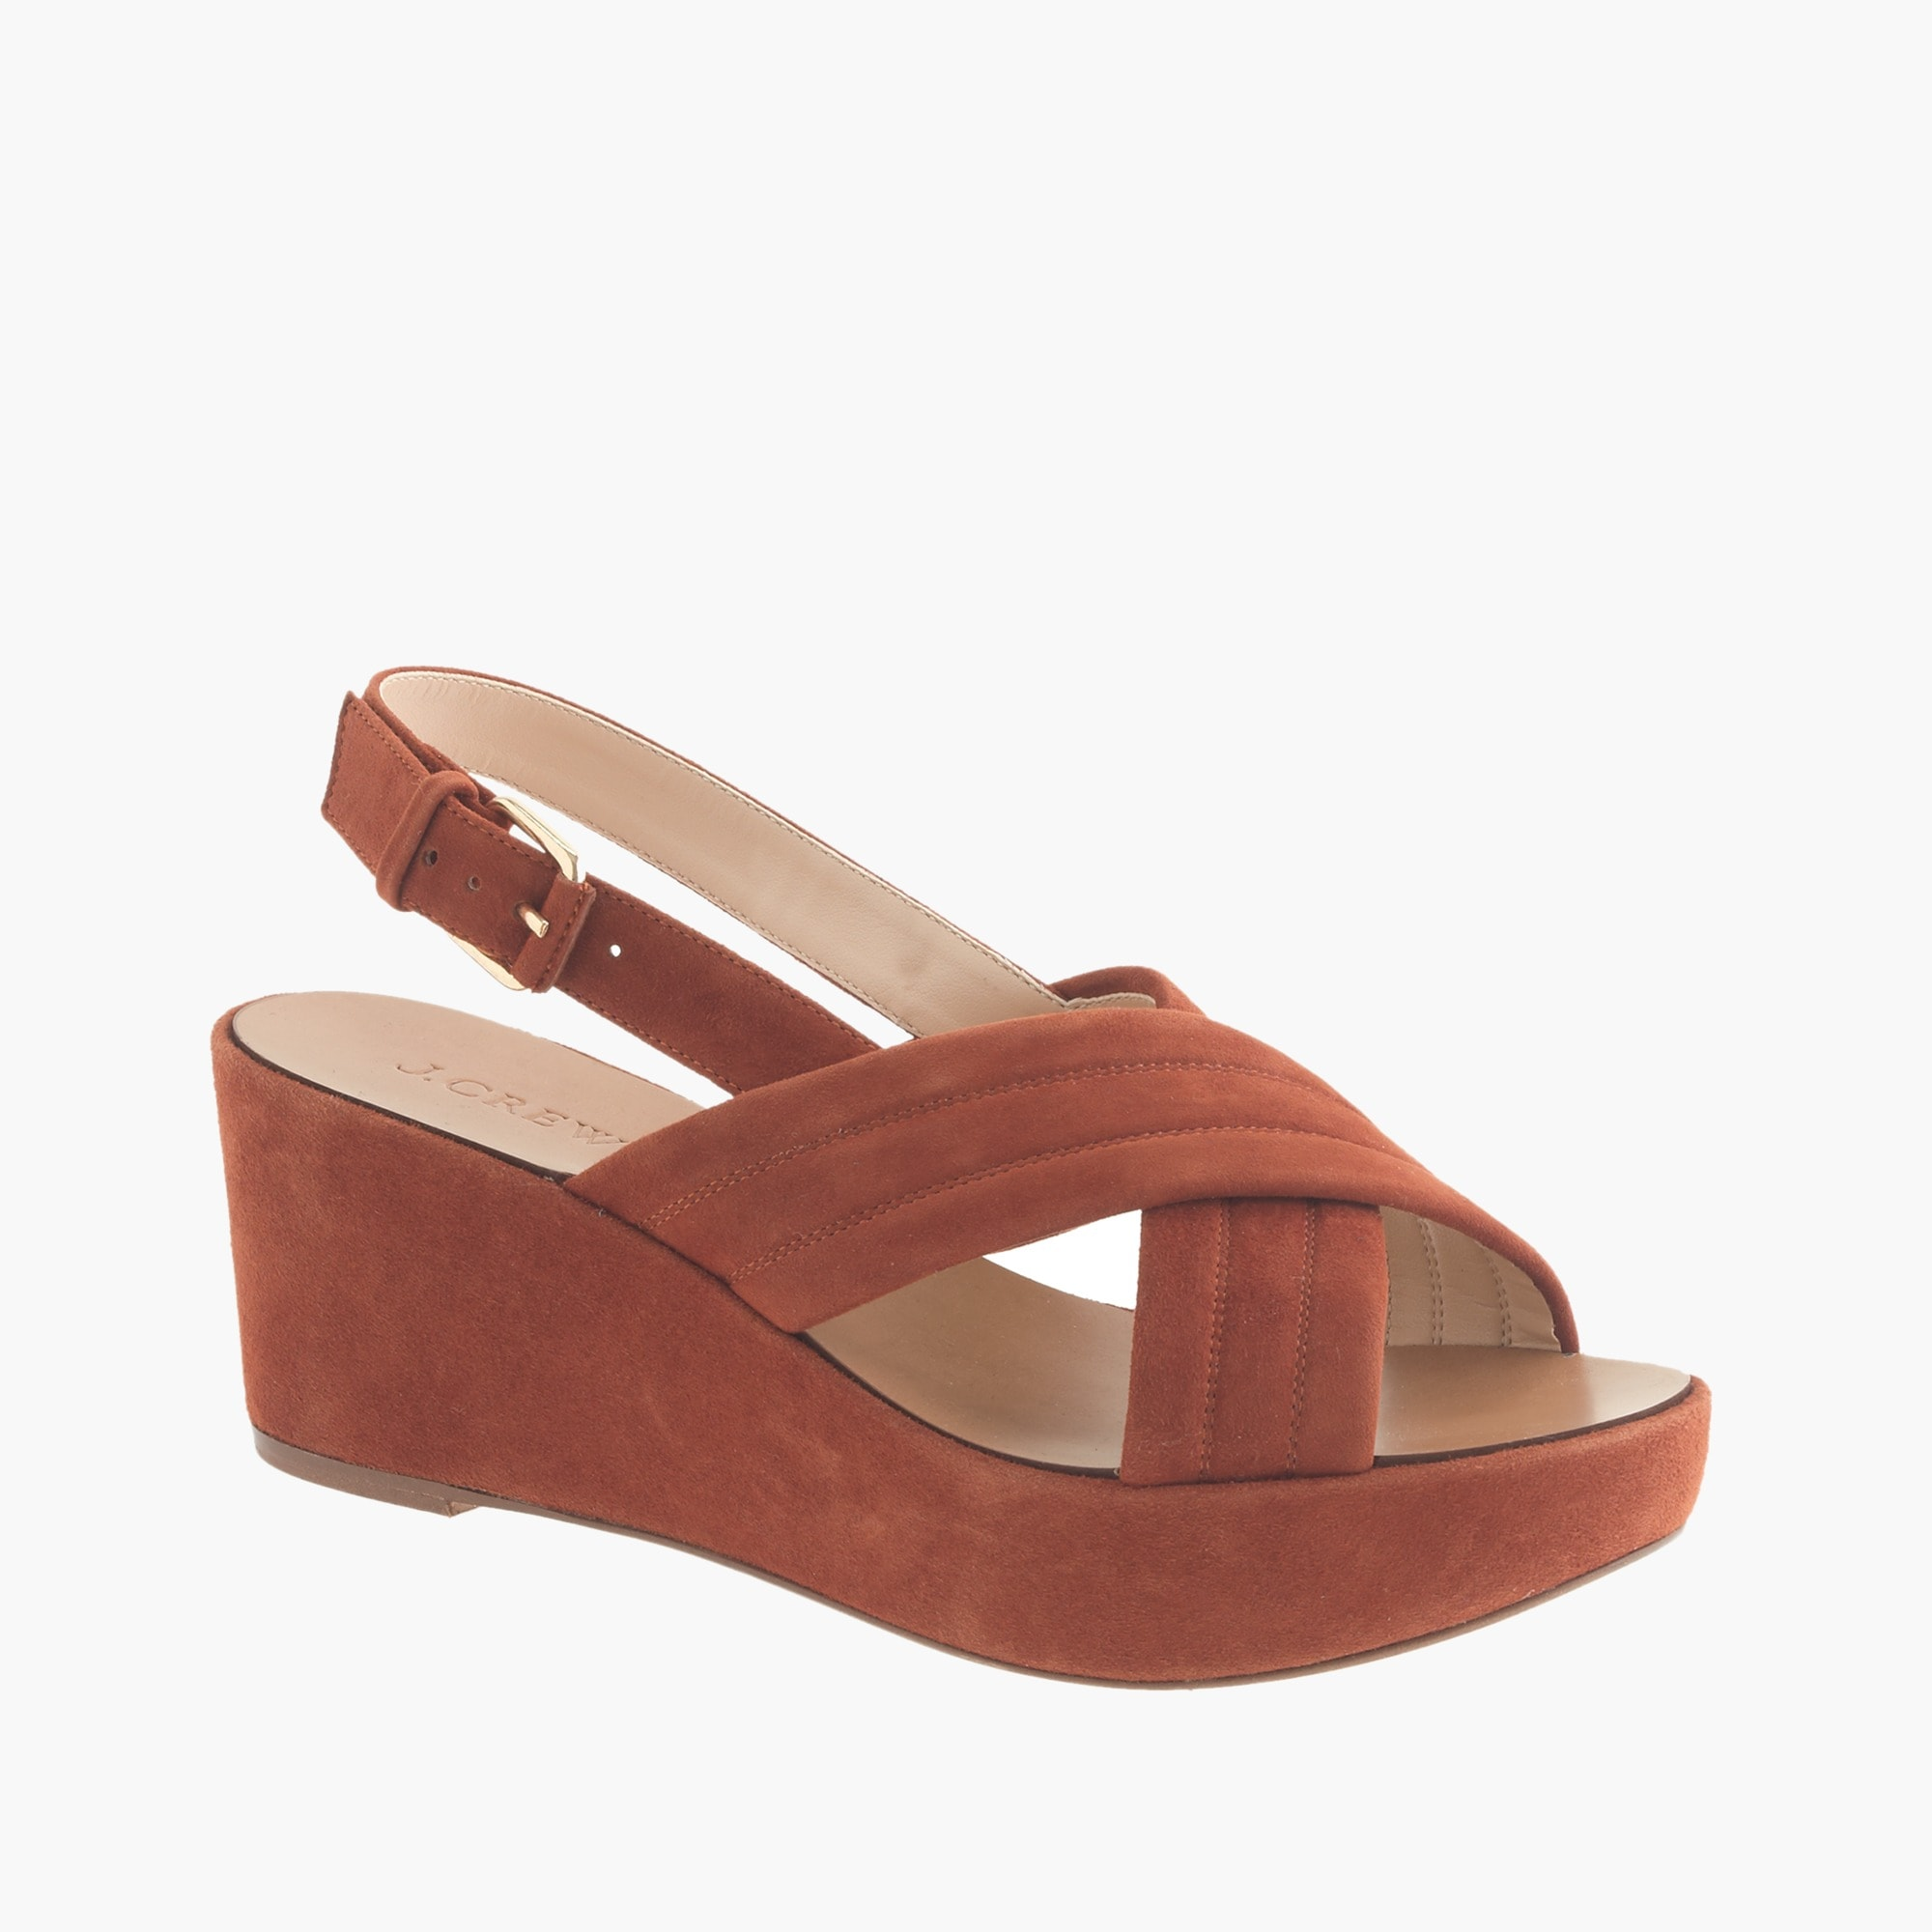 marcie suede wedges : women sandals